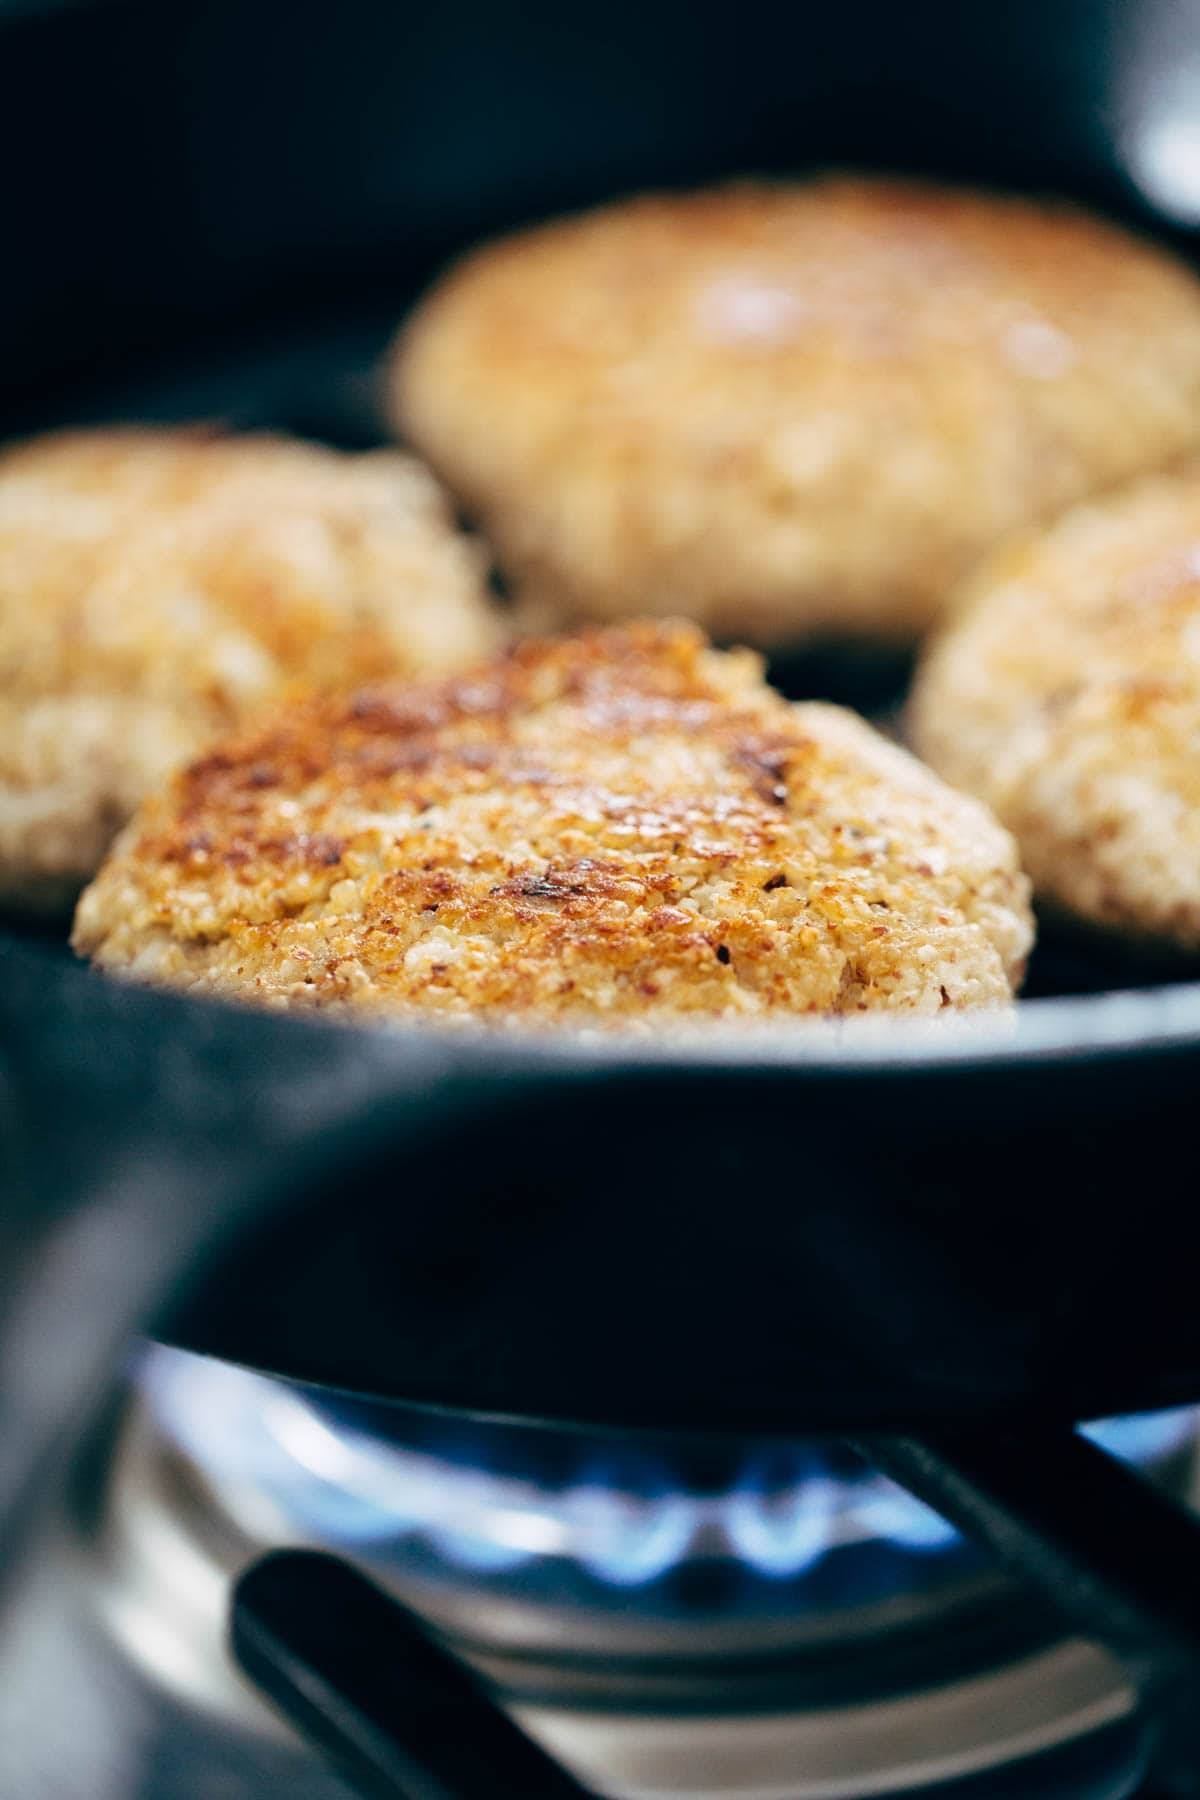 Recipe for Spicy Cauliflower Burgers with avocado sauce, cilantro lime slaw, and chipotle mayo! Meatless, filling, and delicious!   pinchofyum.com